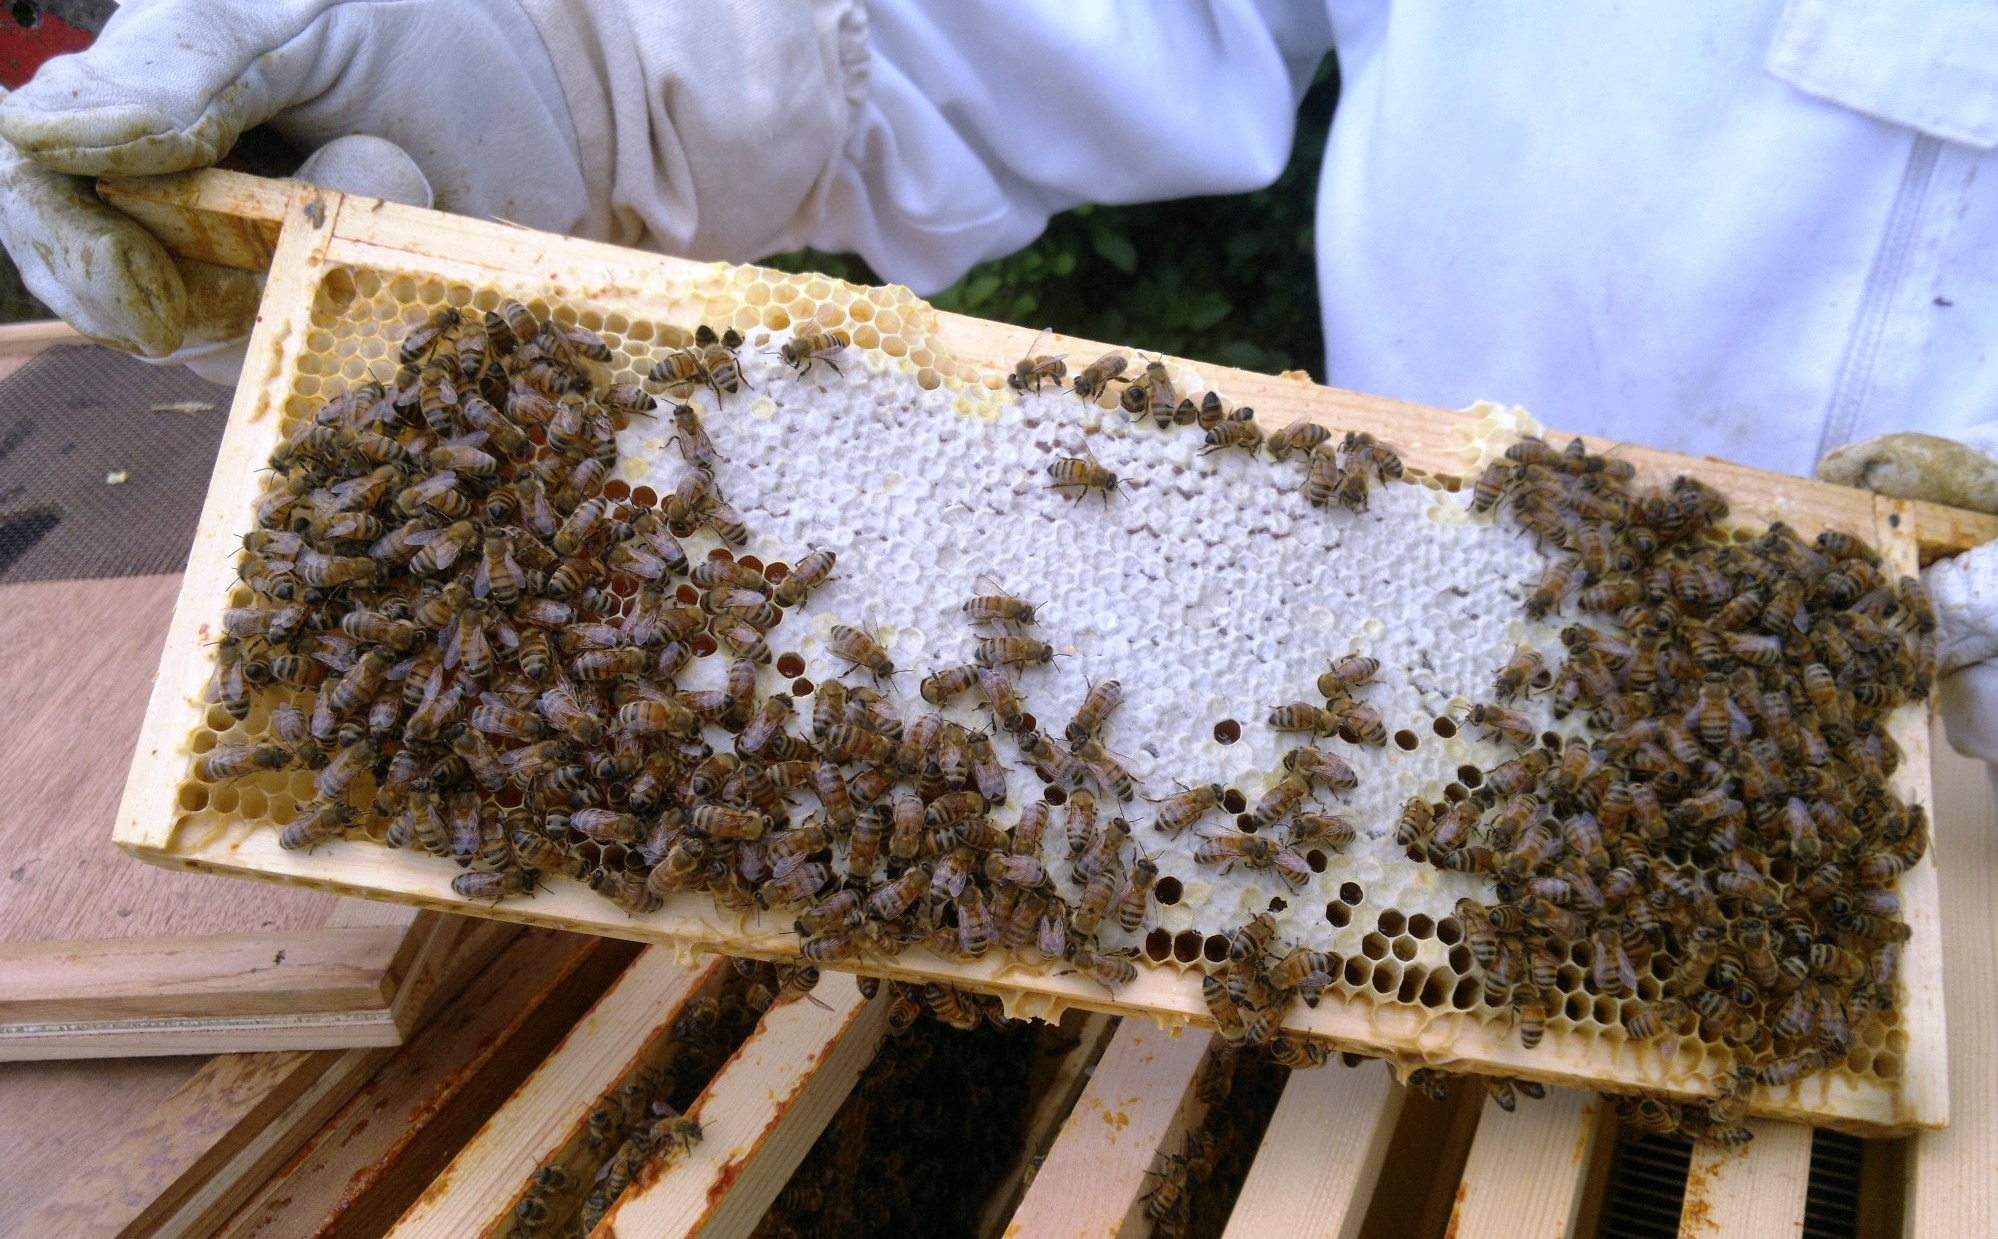 Another super frame almost full of honey